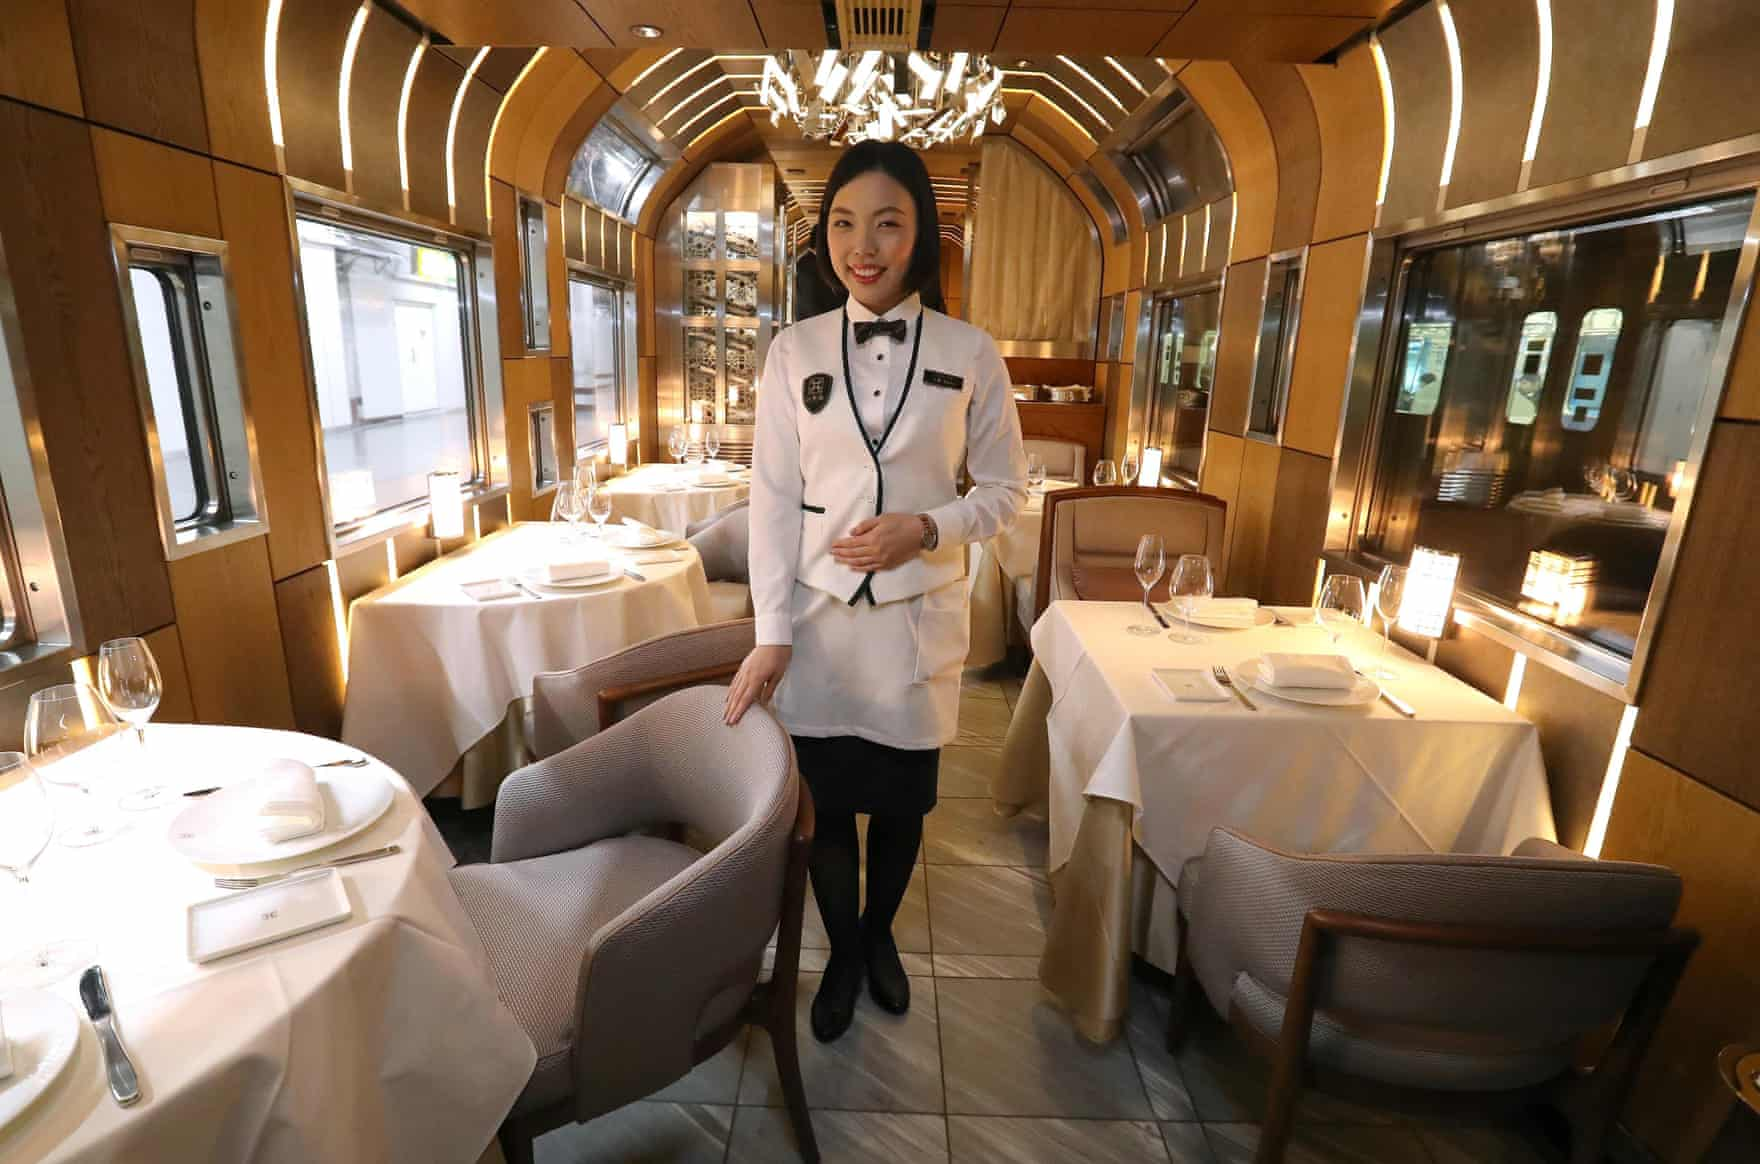 The dining car, where guests can select from a menu devised by a Michelin-starred chef